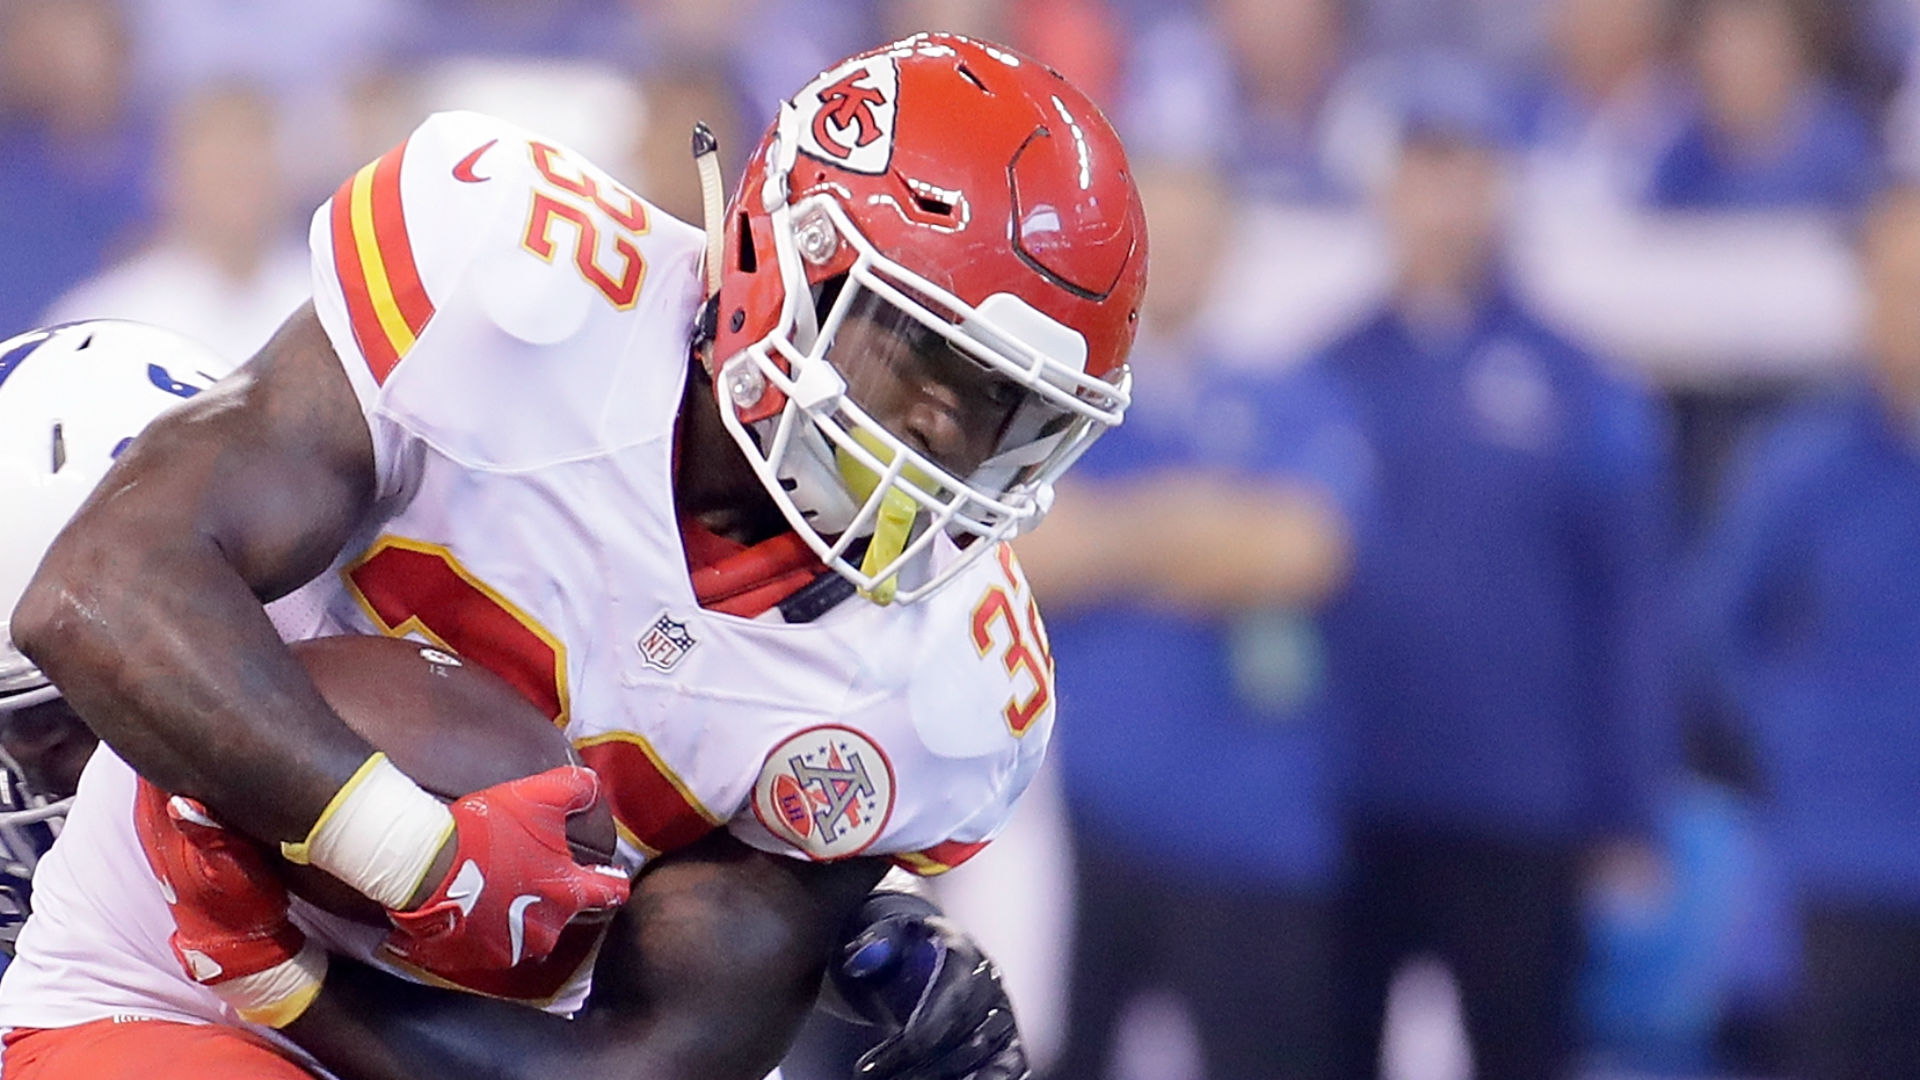 Kansas City Chiefs RB Spencer Ware likely done for season